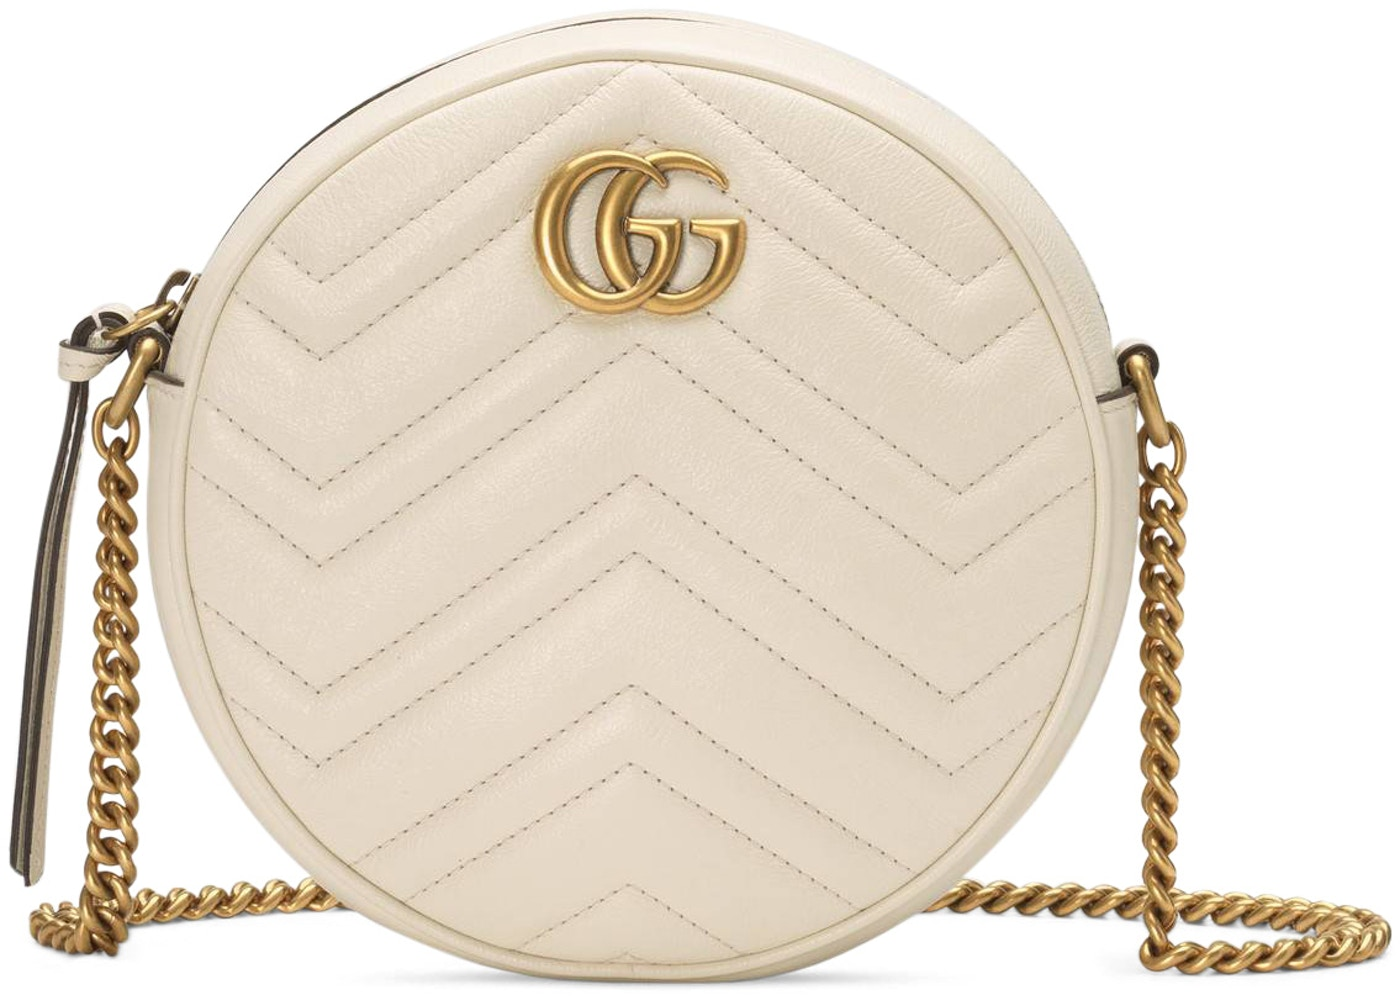 Gucci Gg Marmont Round Shoulder Bag